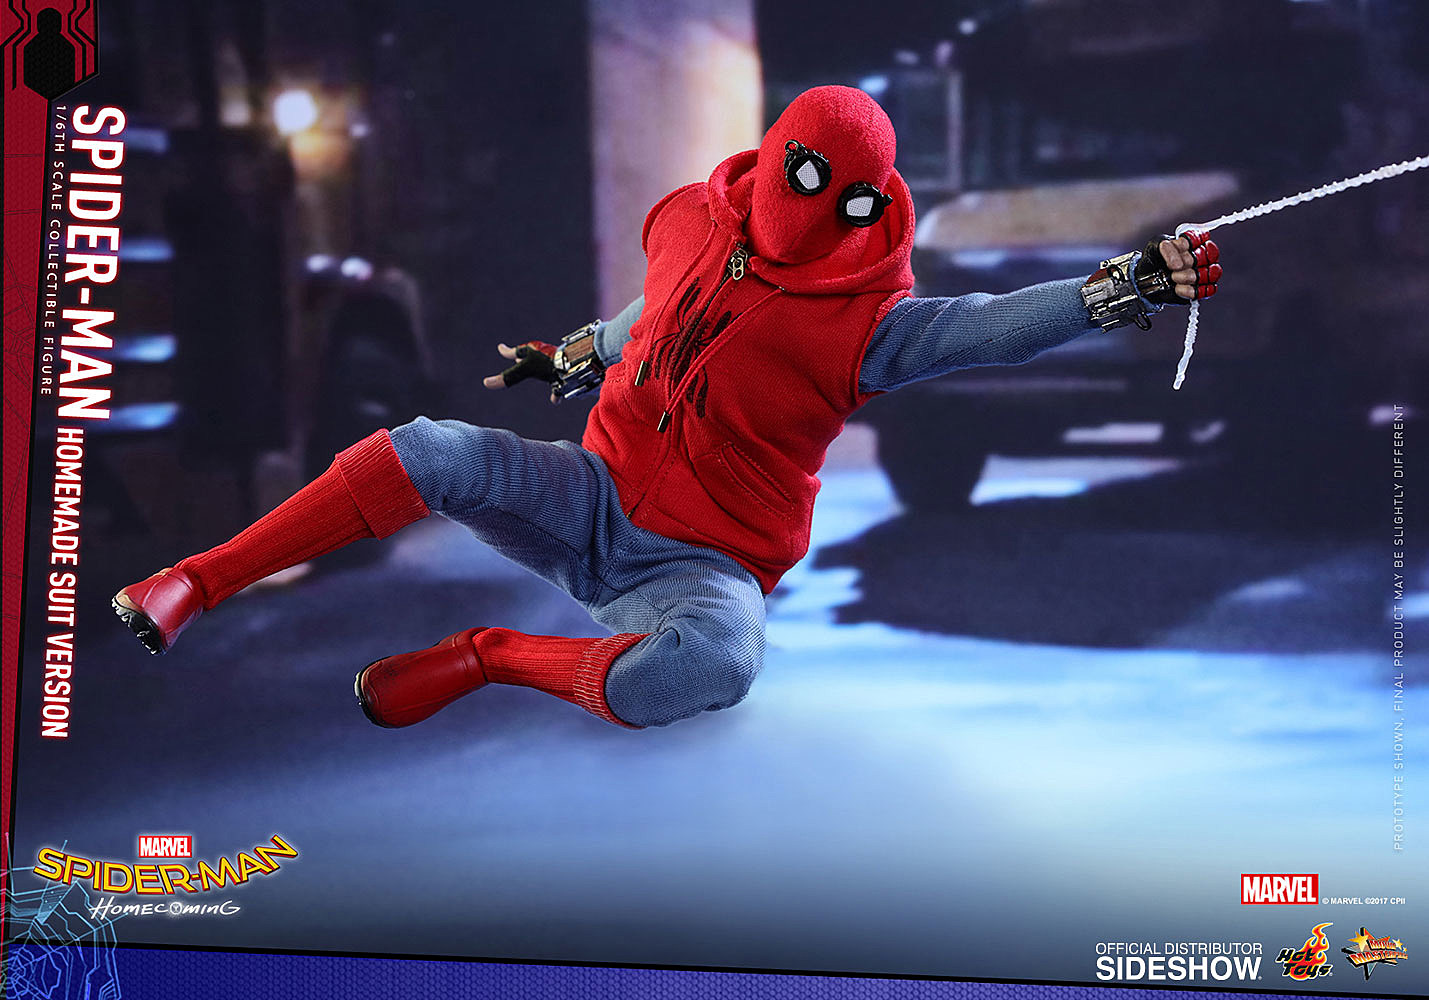 Hot Toys Goes Homemade With First Spider Man Homecoming Figure